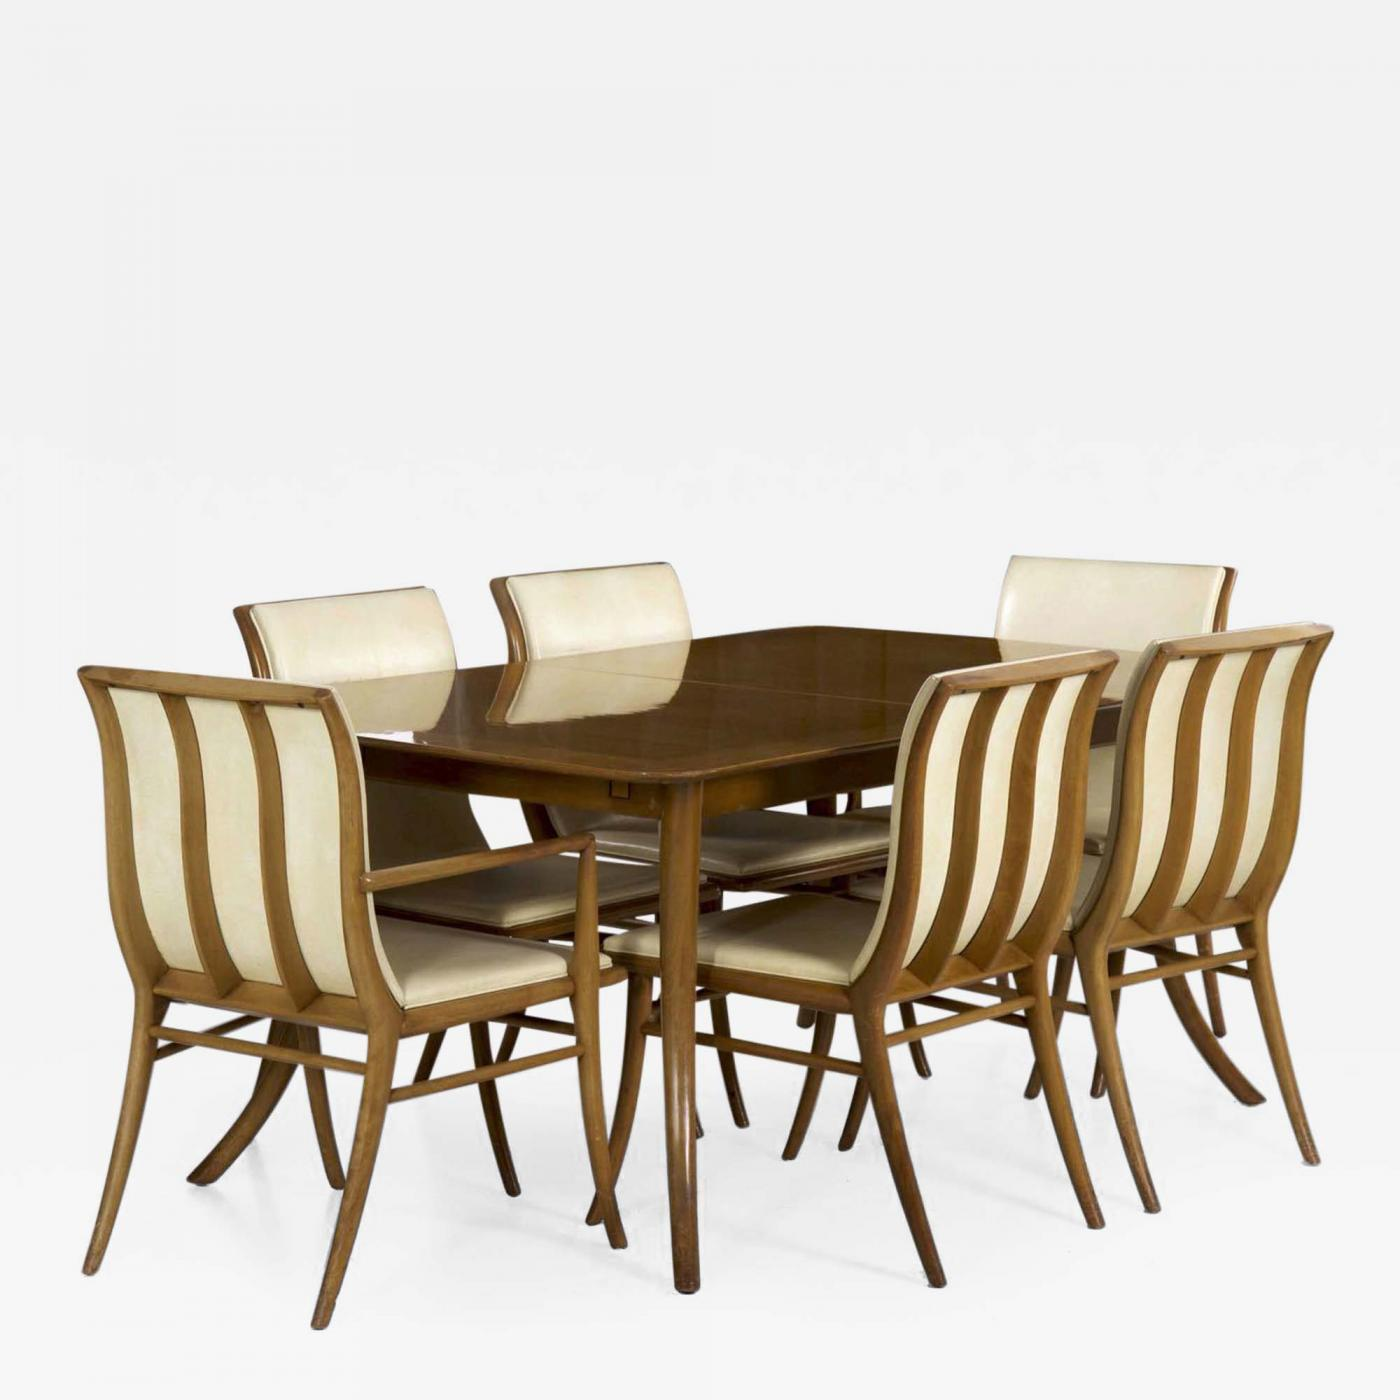 T.H. Robsjohn Gibbings For Widdicomb Dining Table And Six Chairs